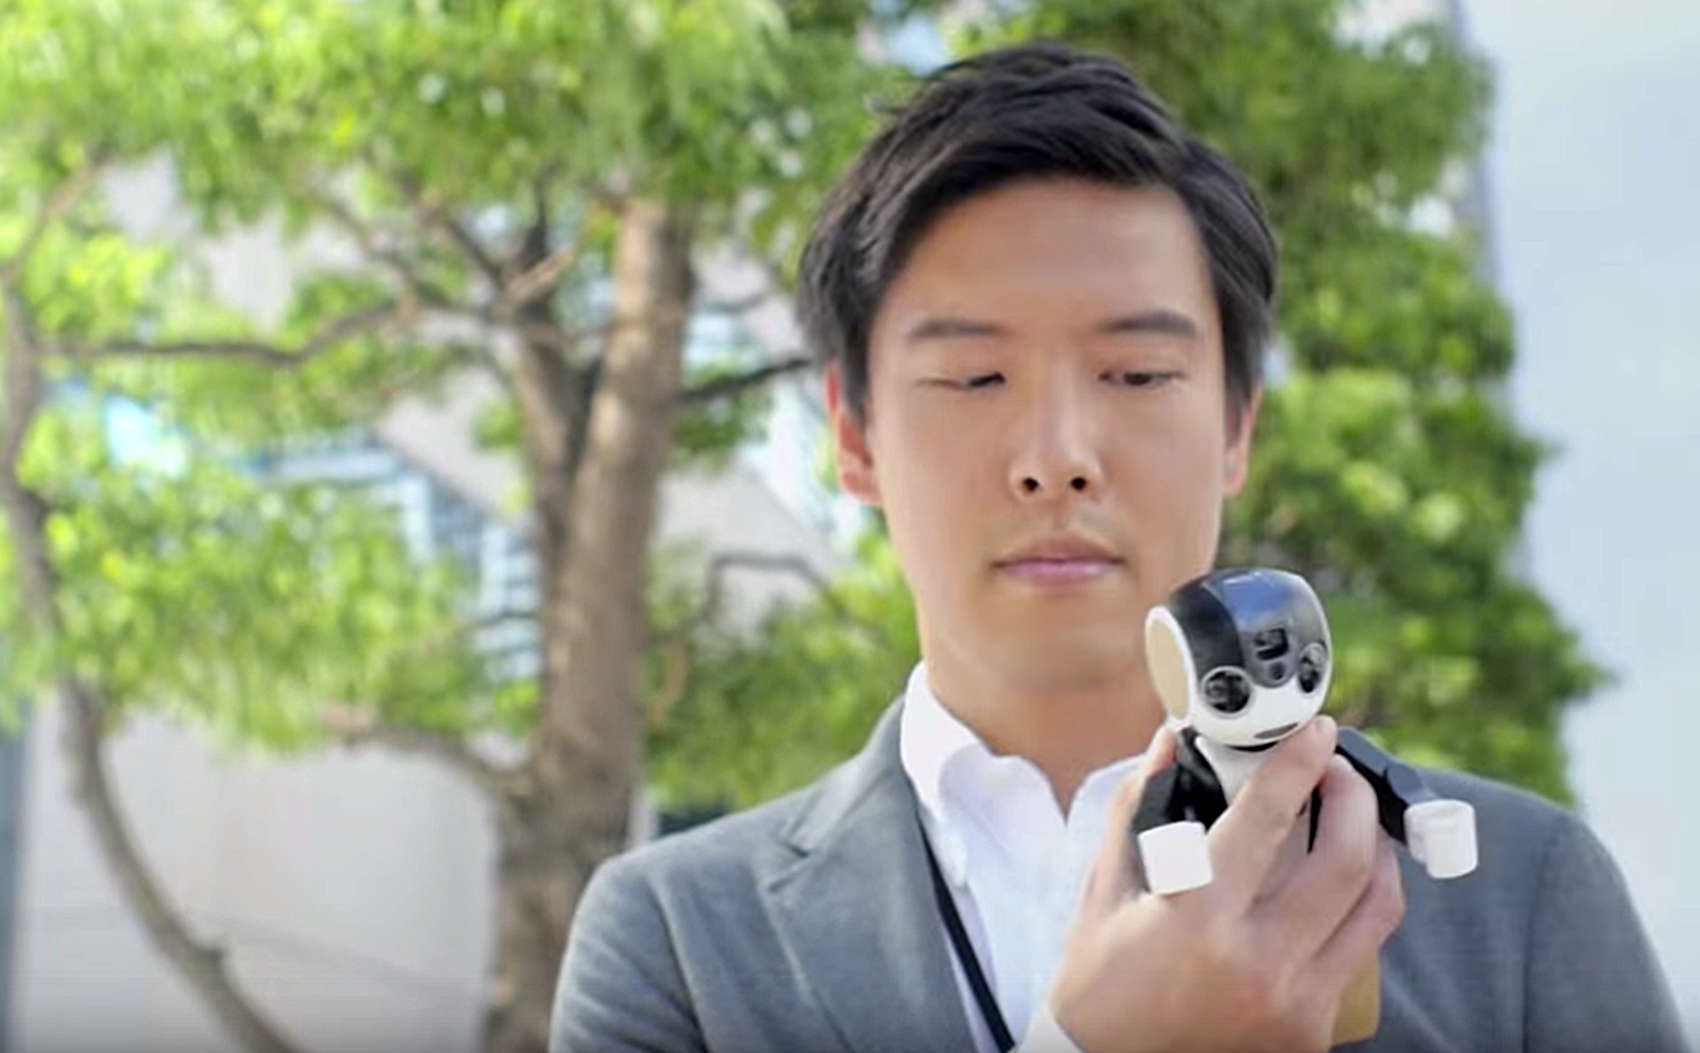 This guy has traded in his smartphone for a RoBoHon.